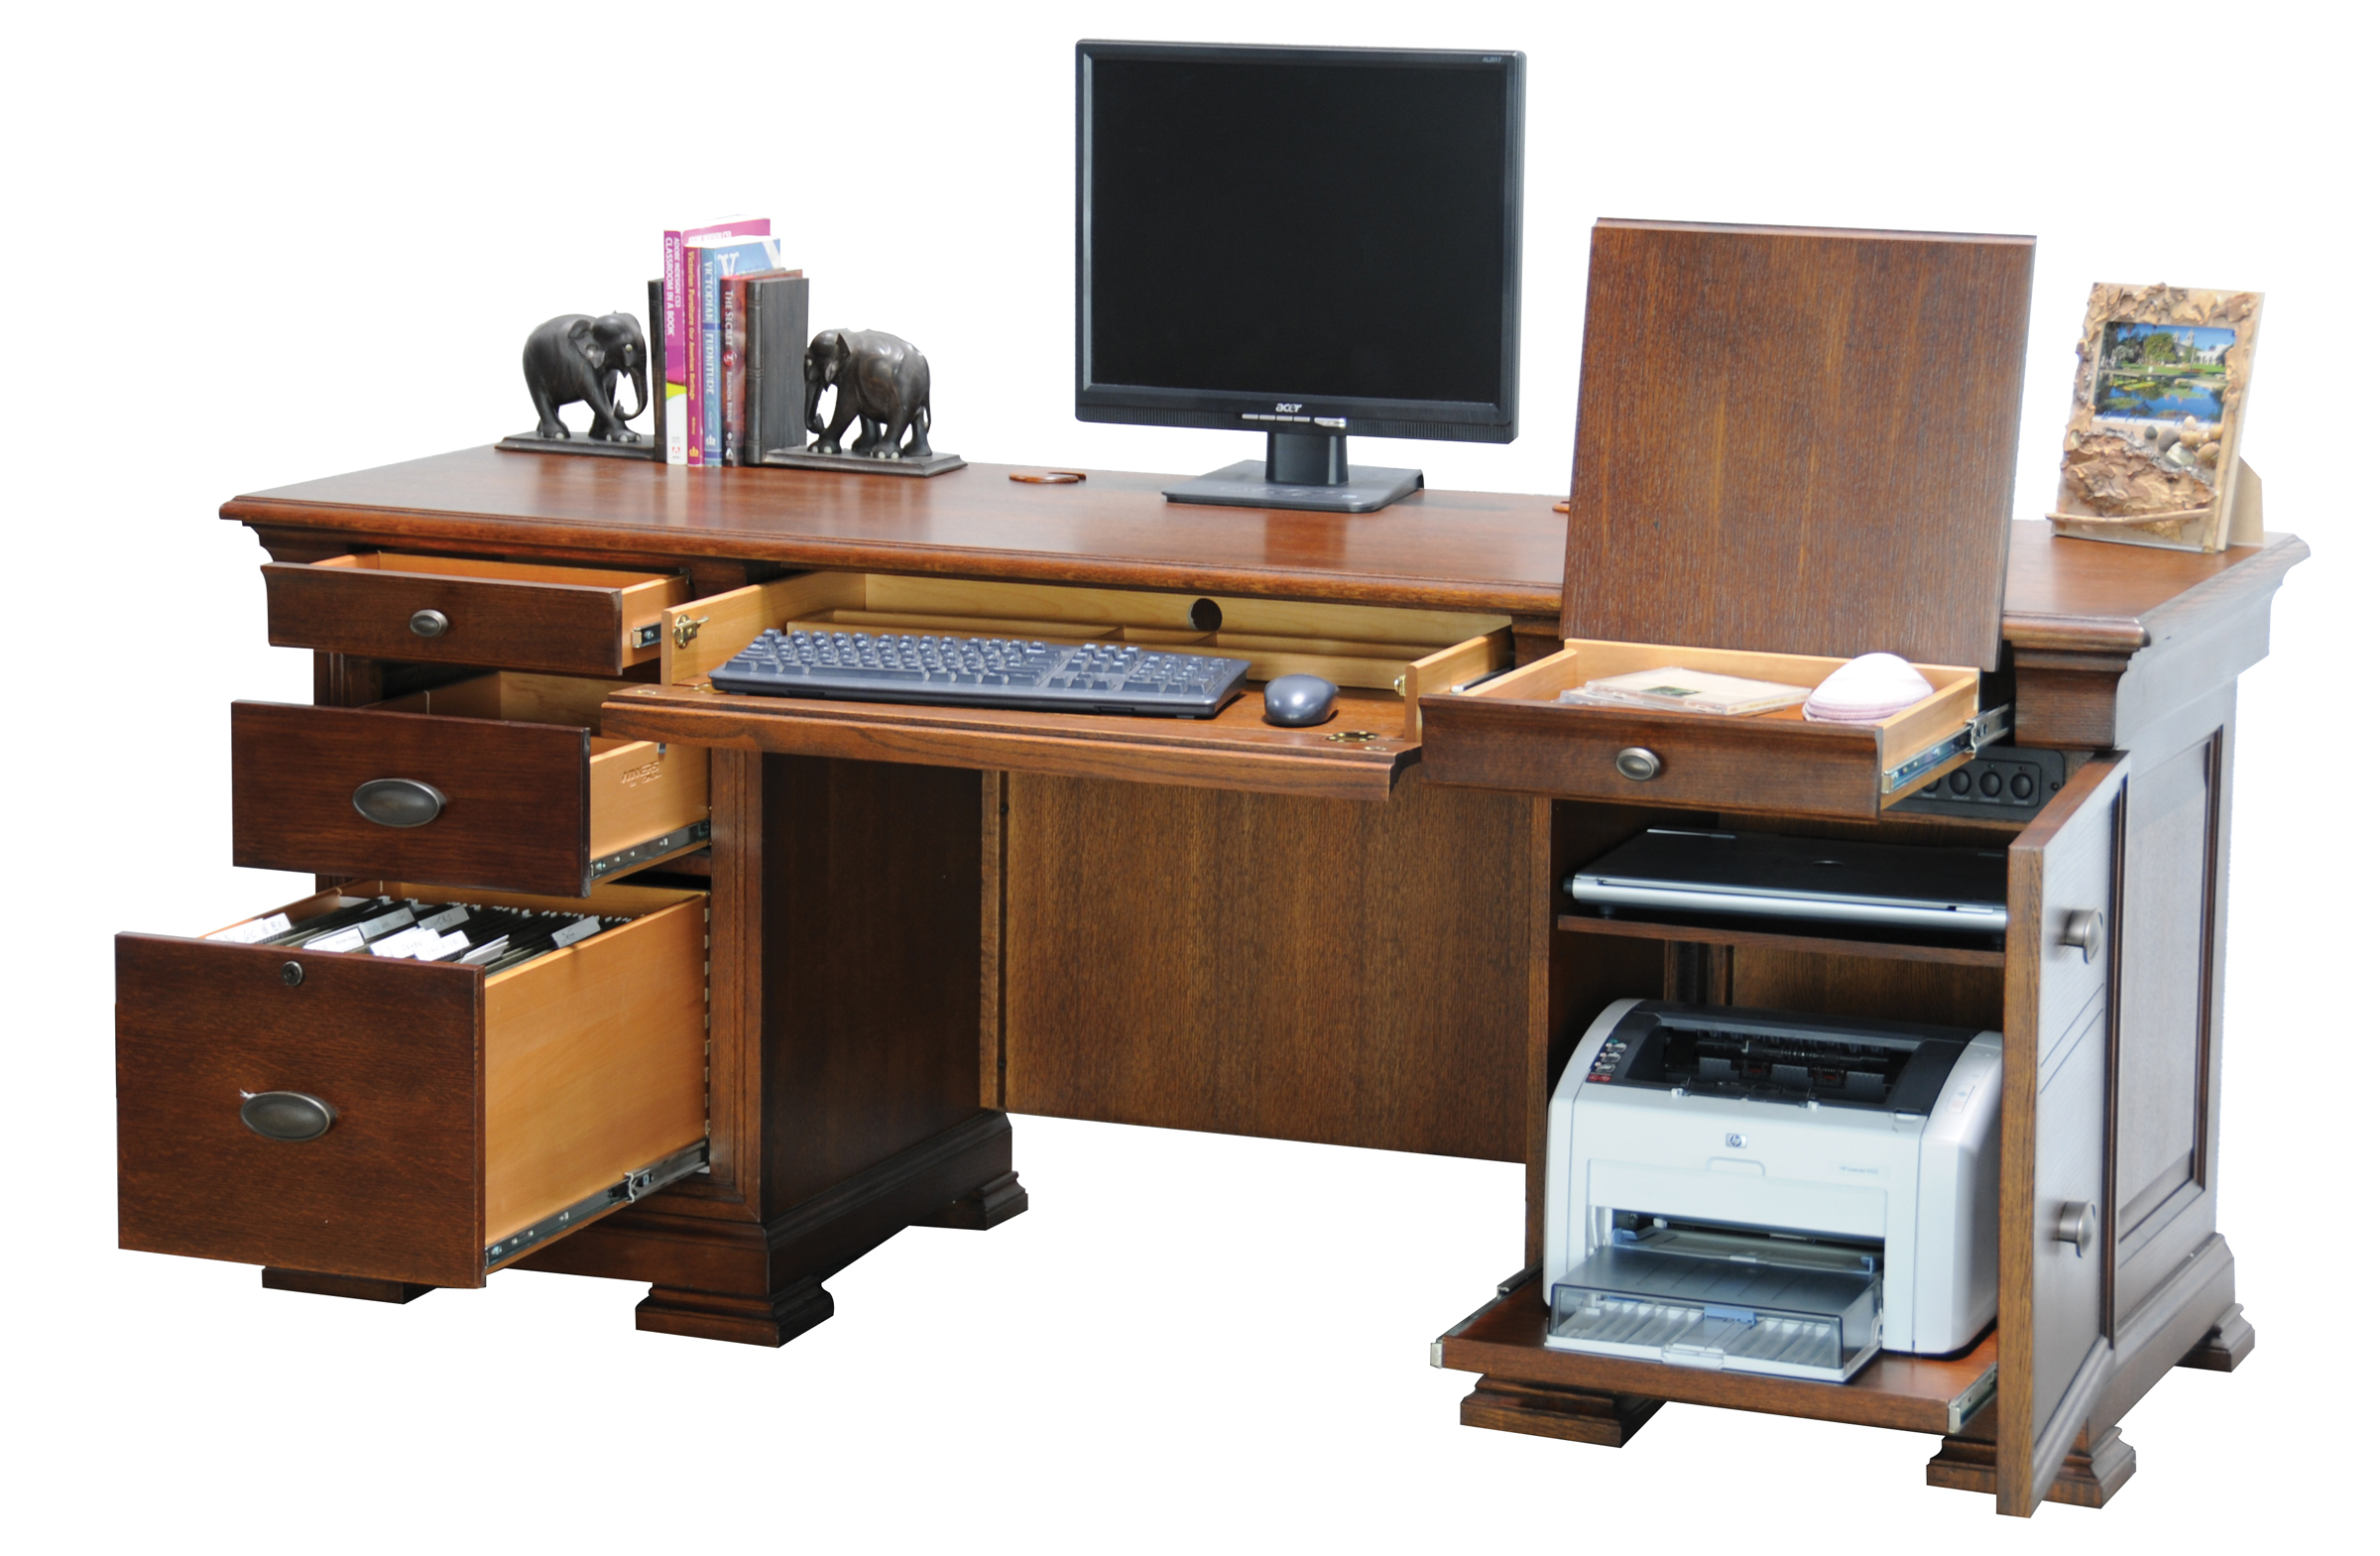 Build Executive Desk Design Plans DIY PDF how to build a garden wood ...